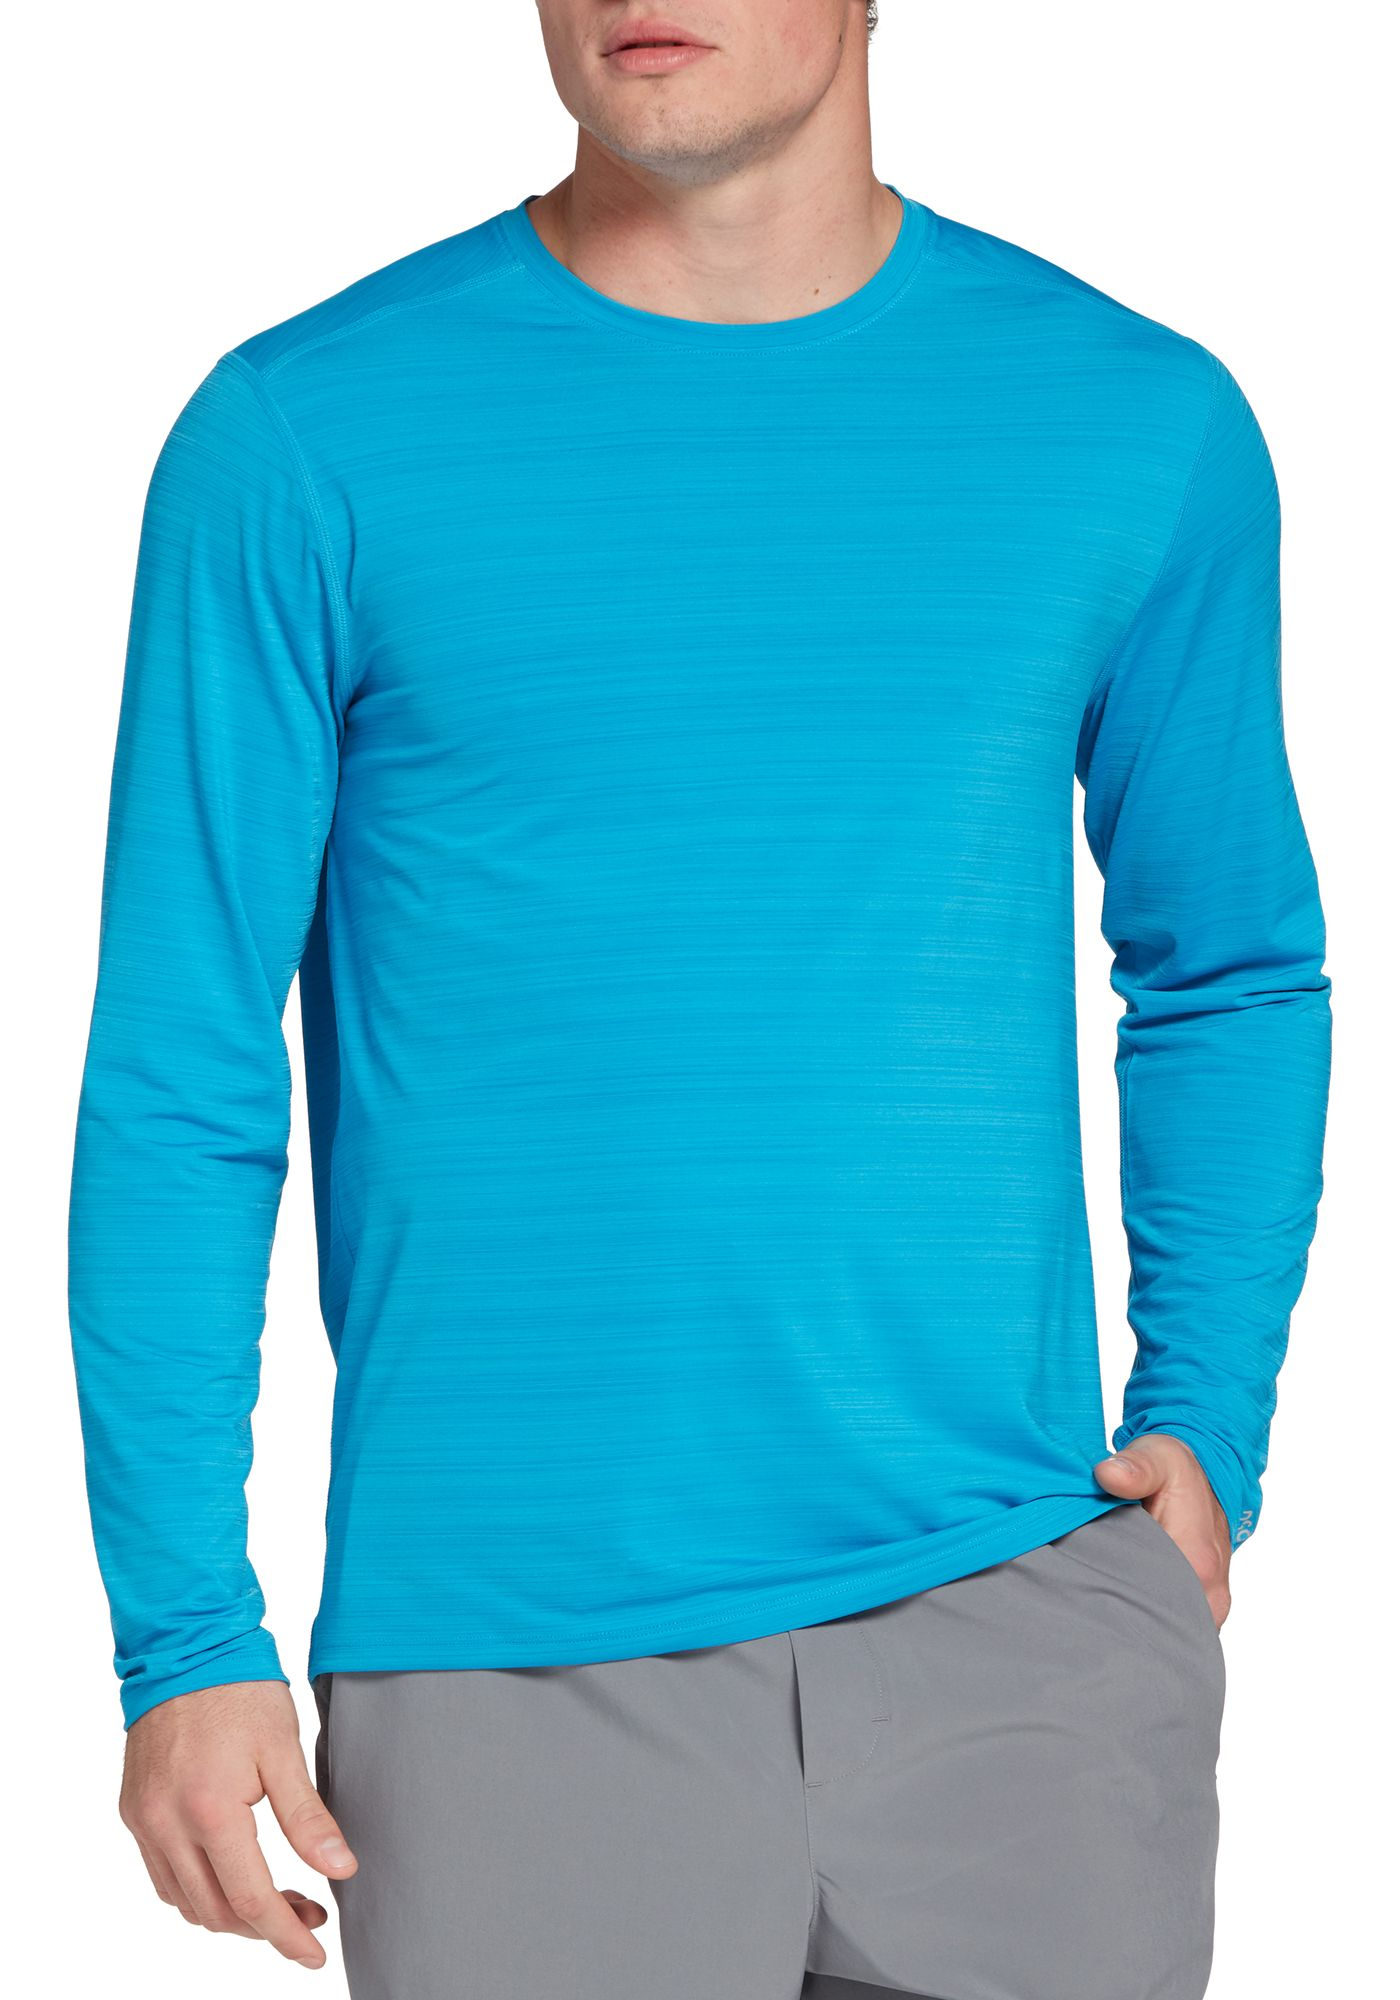 DSG Men's Barcode Training Long Sleeve Shirt